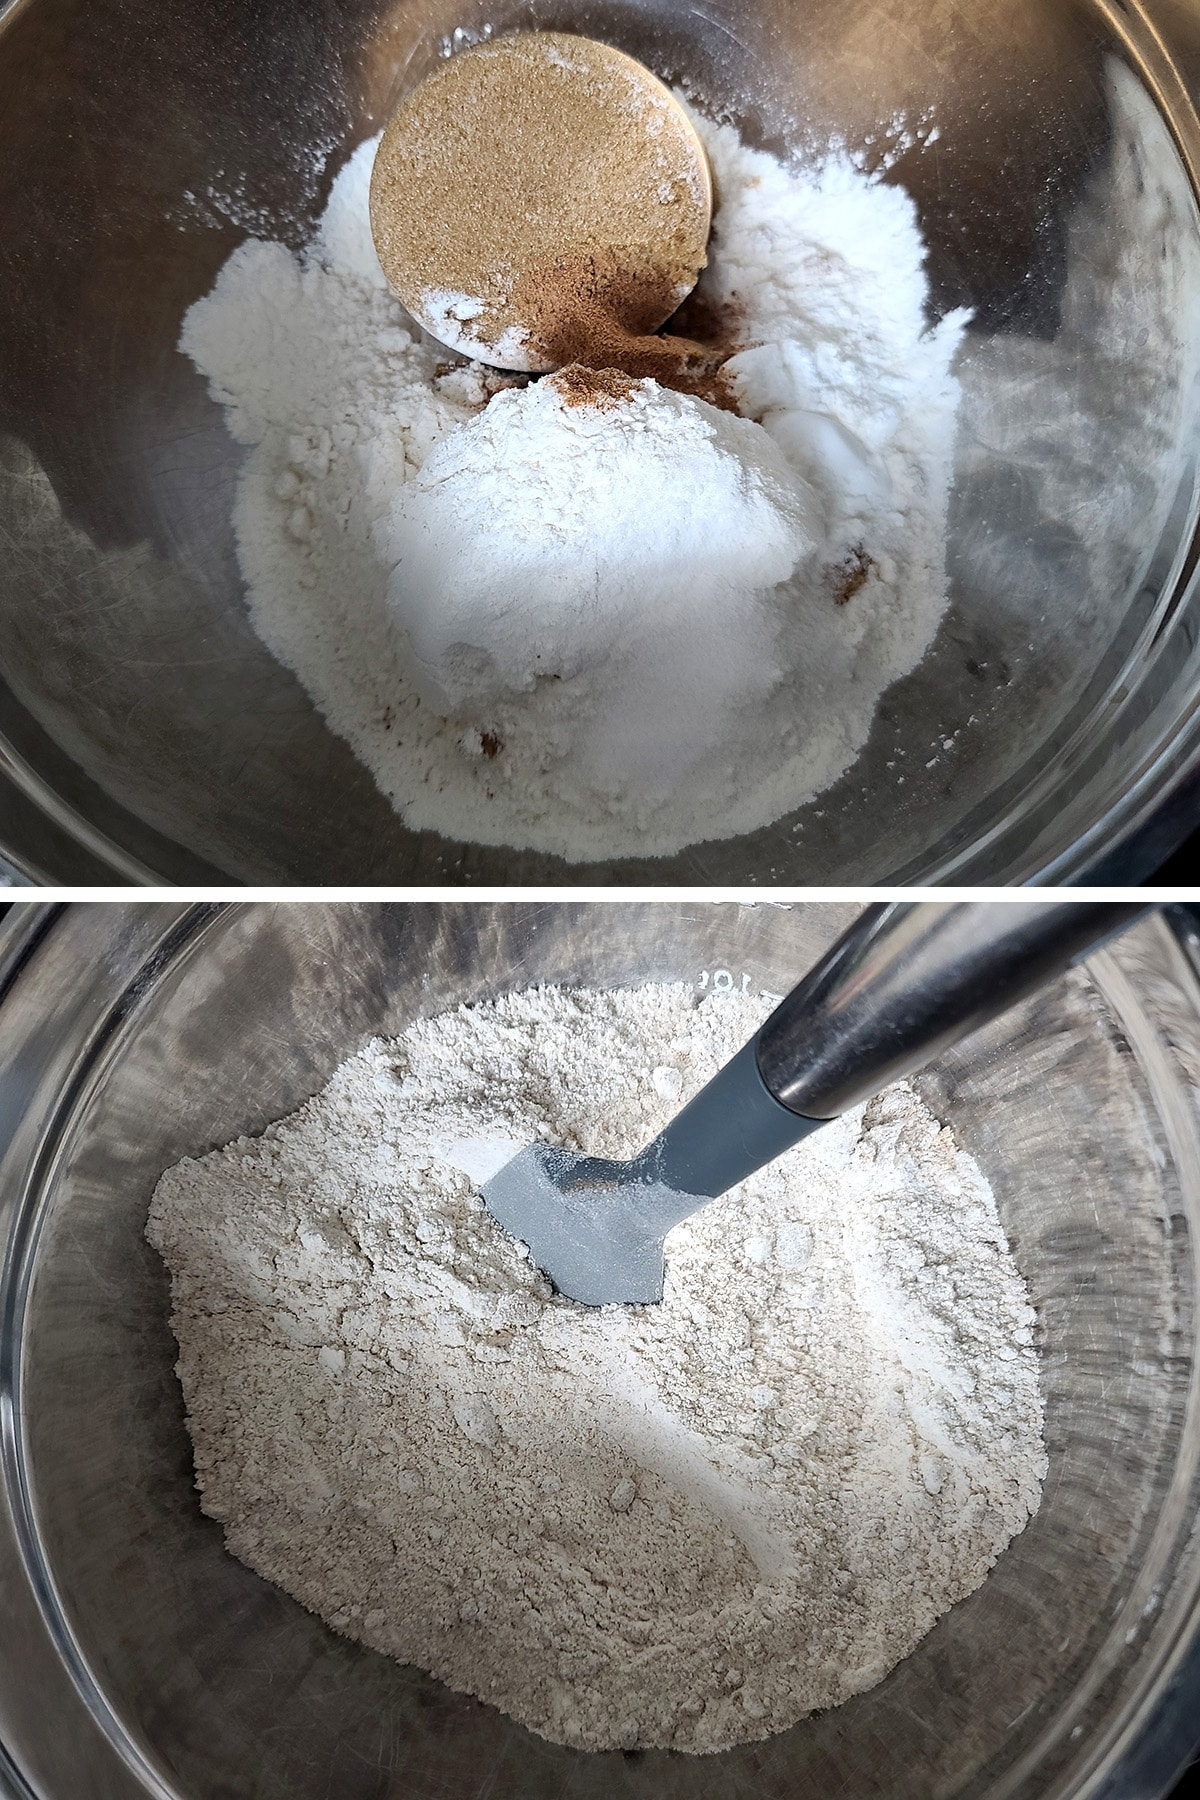 The dry ingredients in a metal bowl, before and after being mixed together.